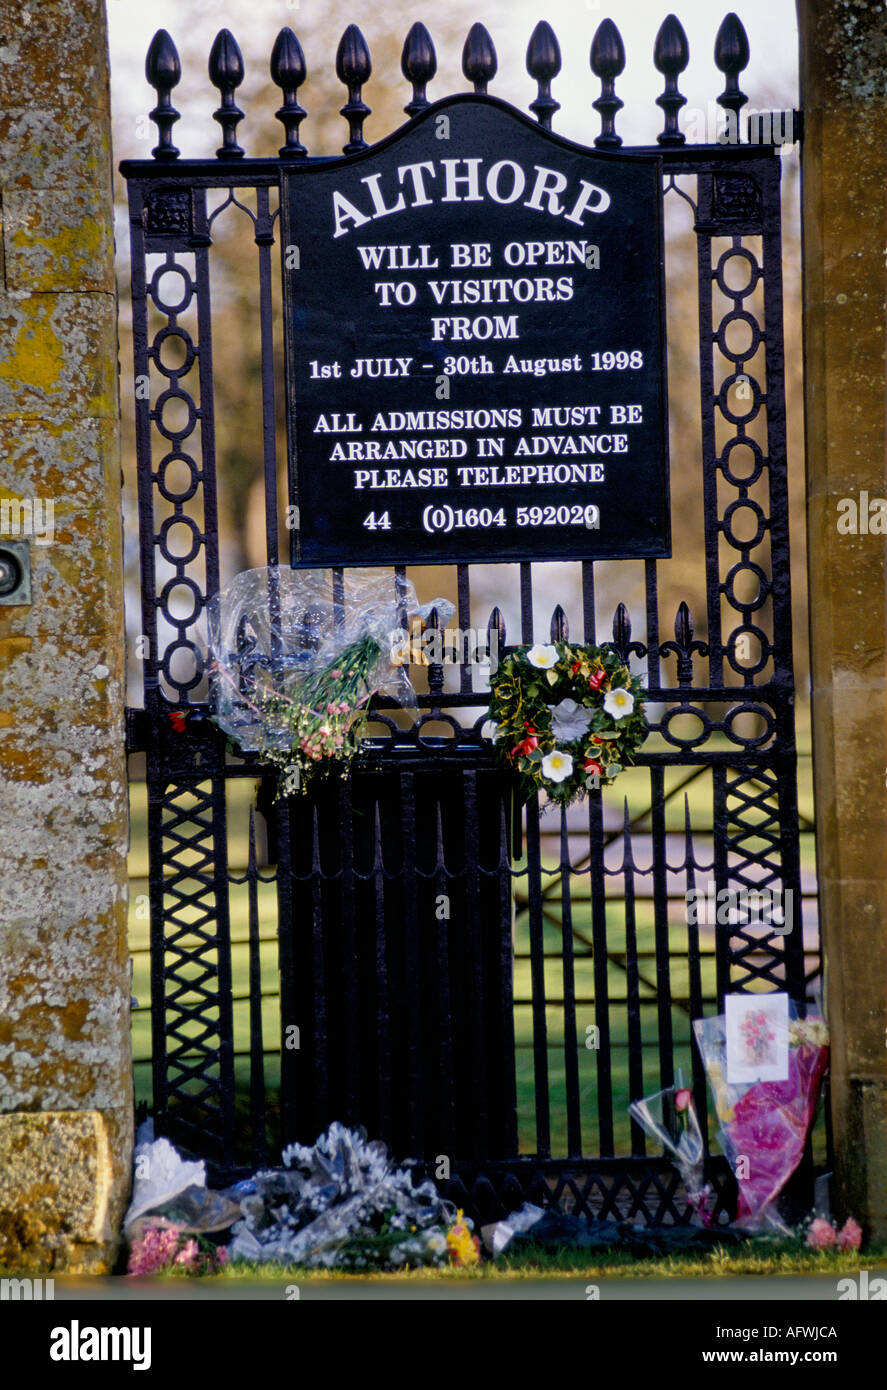 SIGN ON GATE OF ALTHORP HOUSE ANNOUNCING OPENING TIMES FLORAL  TRIBUTES TO DIANA PRINCESS OF WALES 1997 - Stock Image